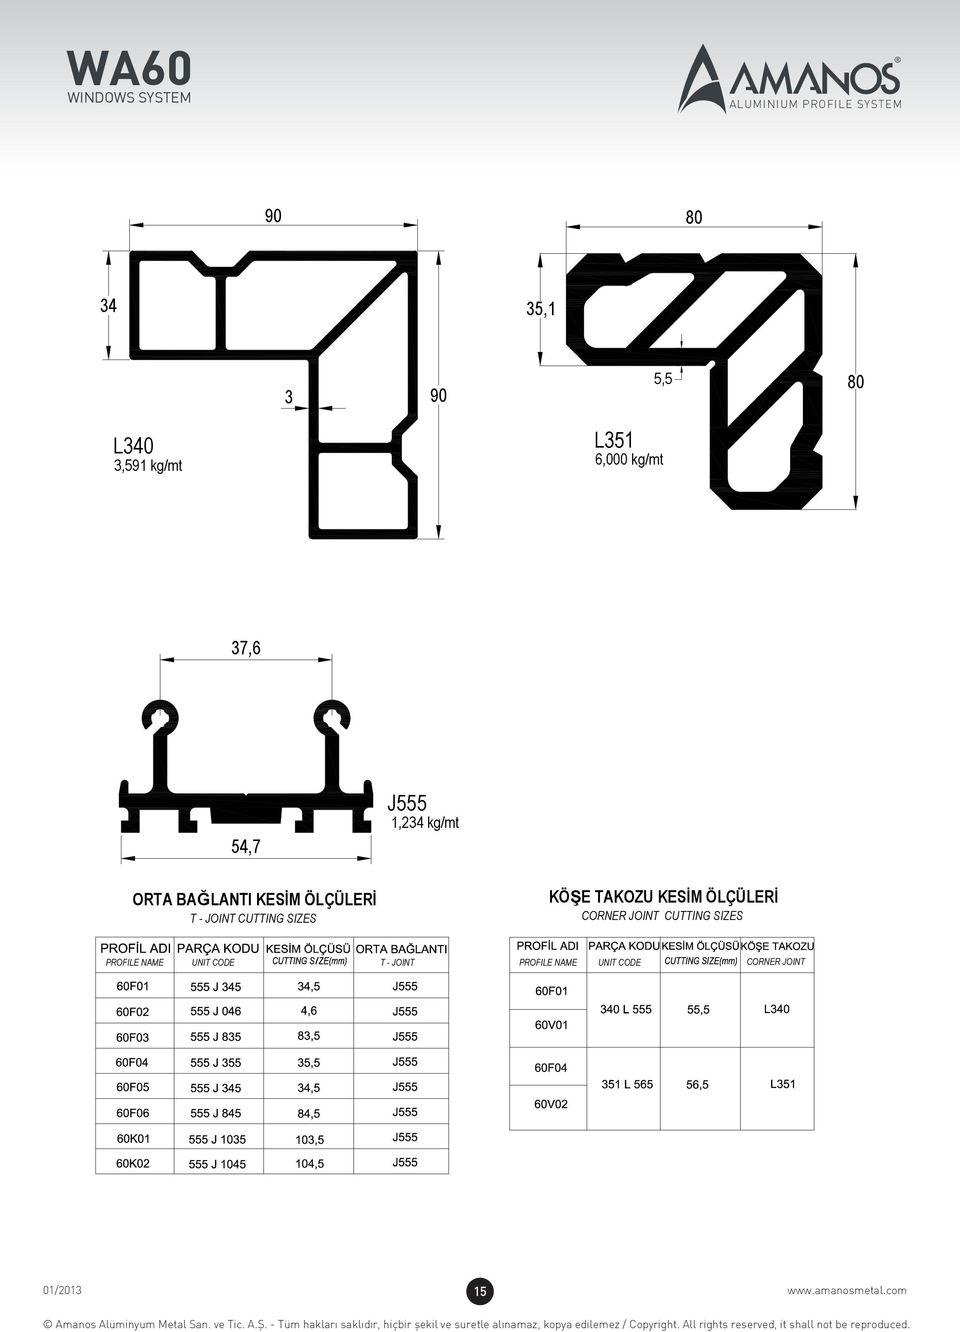 SIZES KÖŞE TAKOZU KESİM ÖLÇÜLERİ CORNER JOINT CUTTING SIZES PROFILE